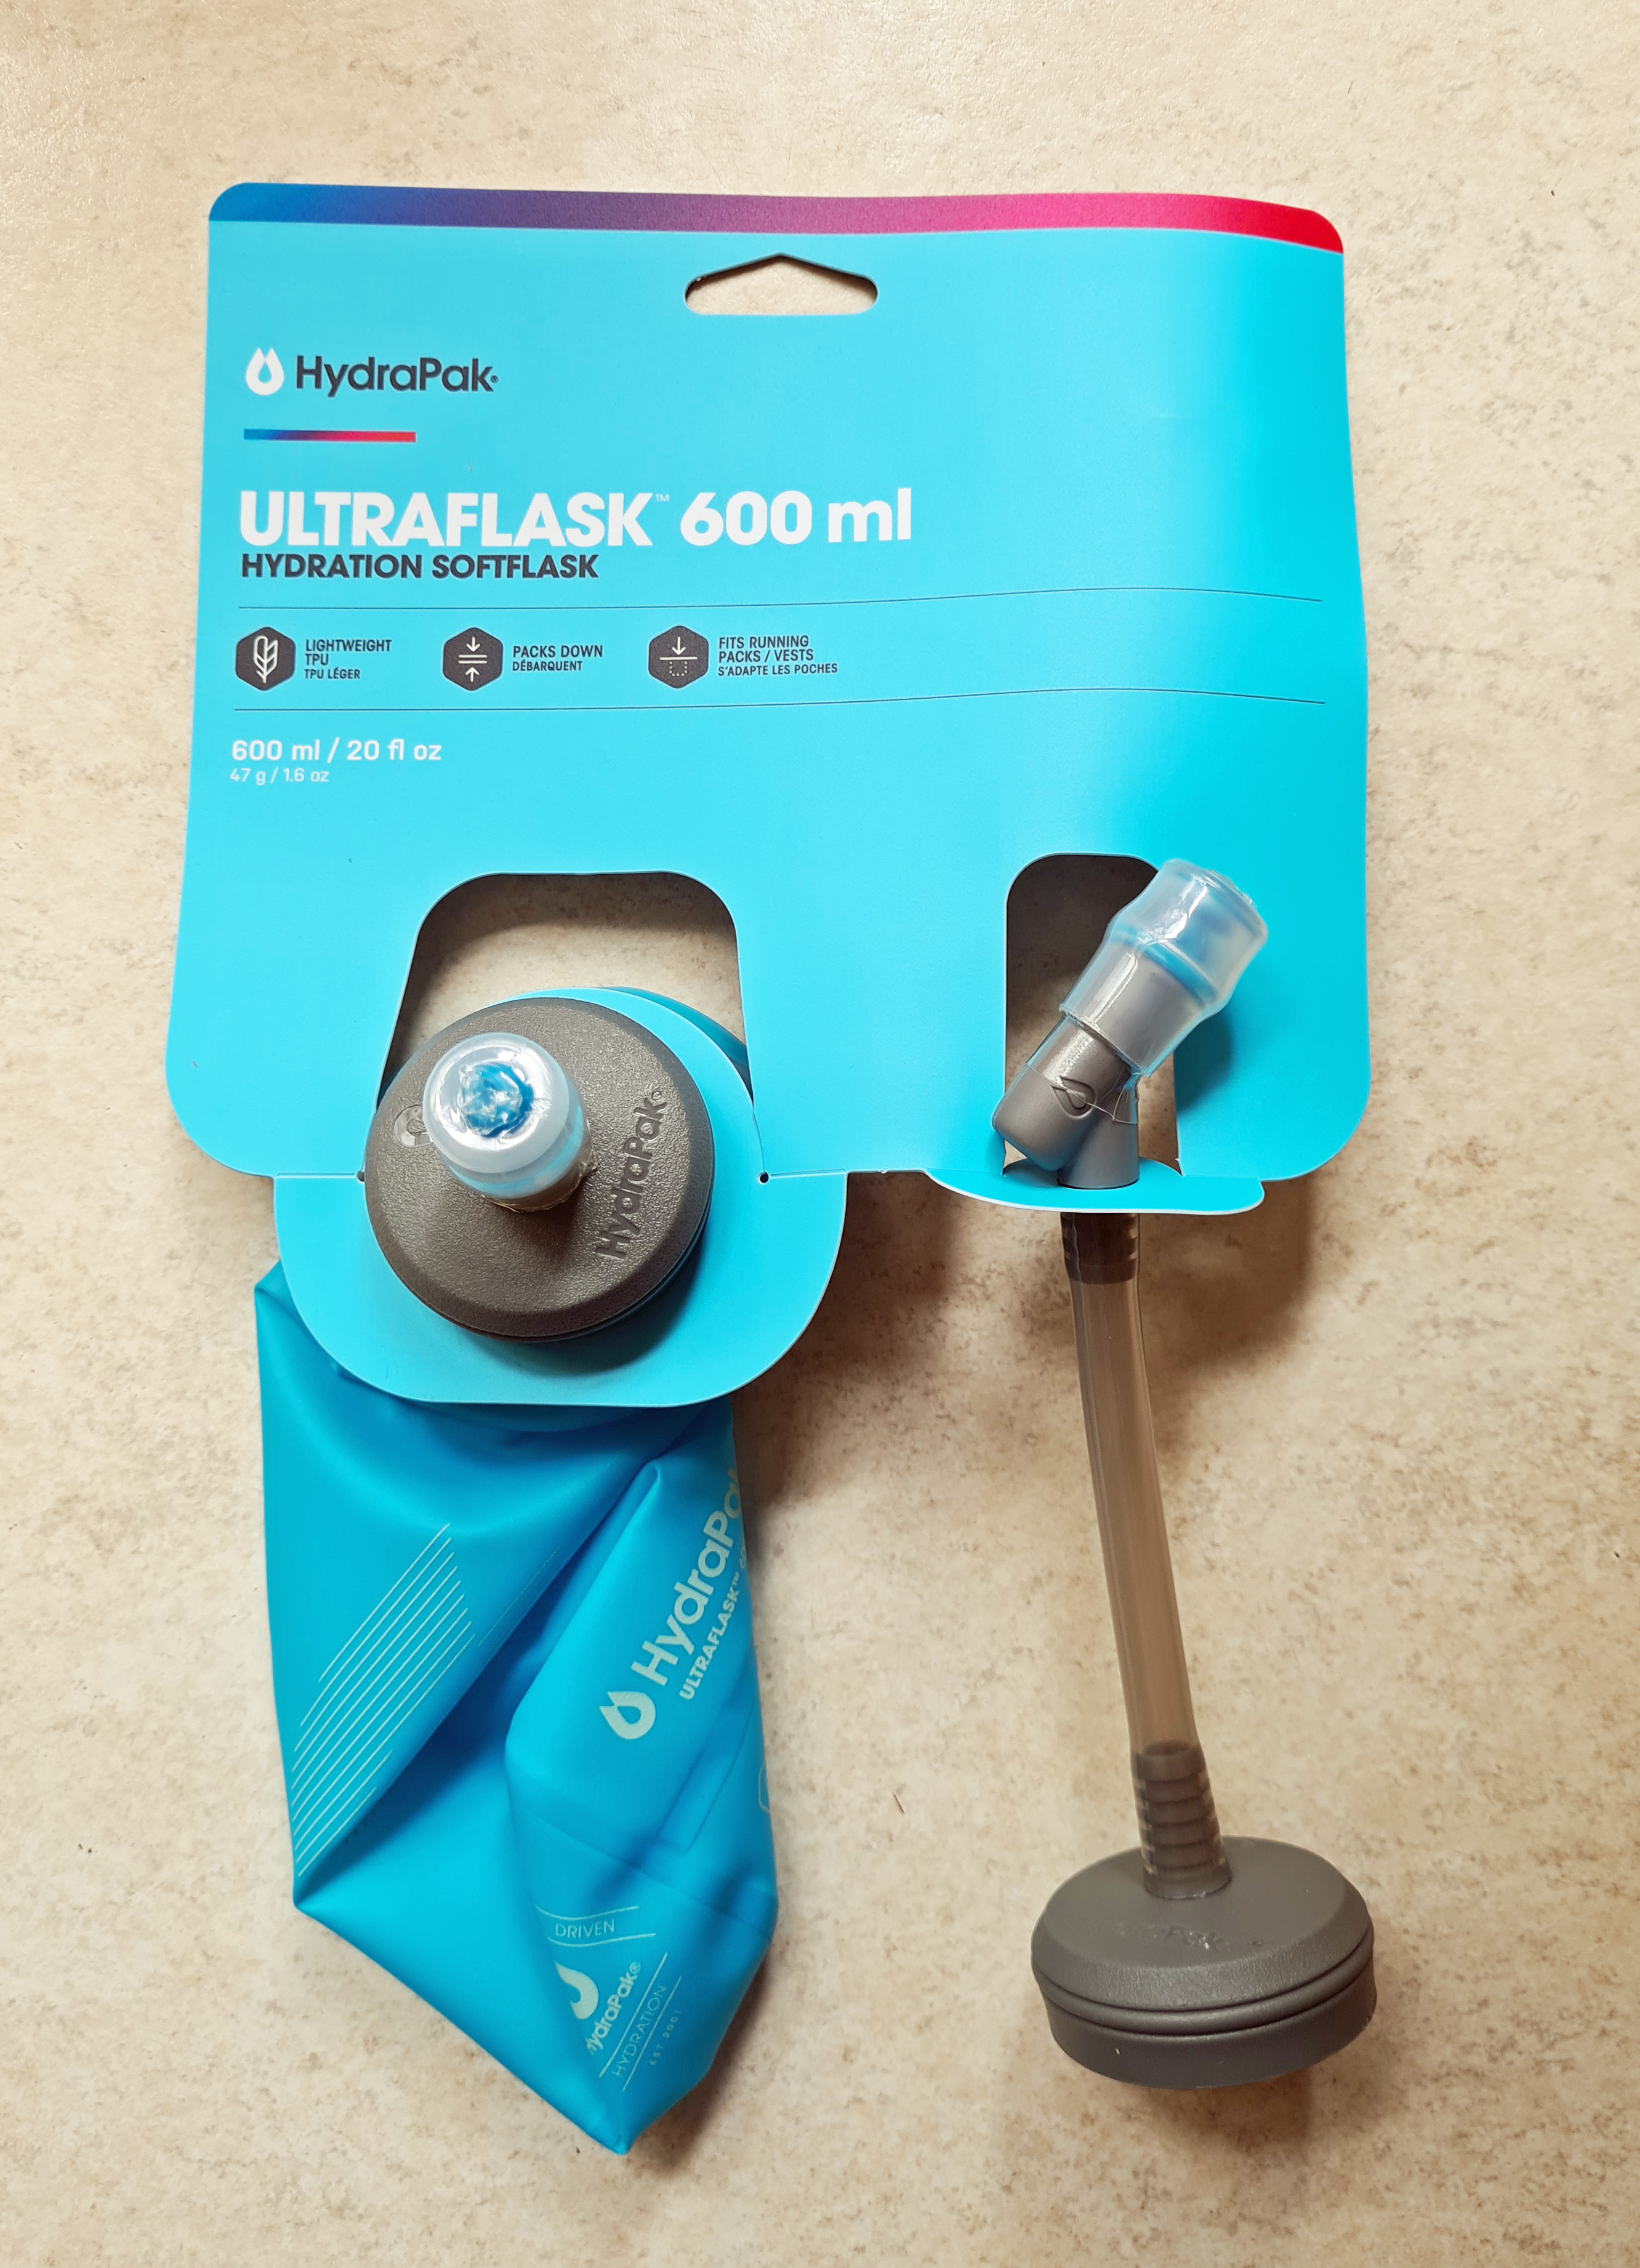 HydraPak Ultraflask- this is the 600ml